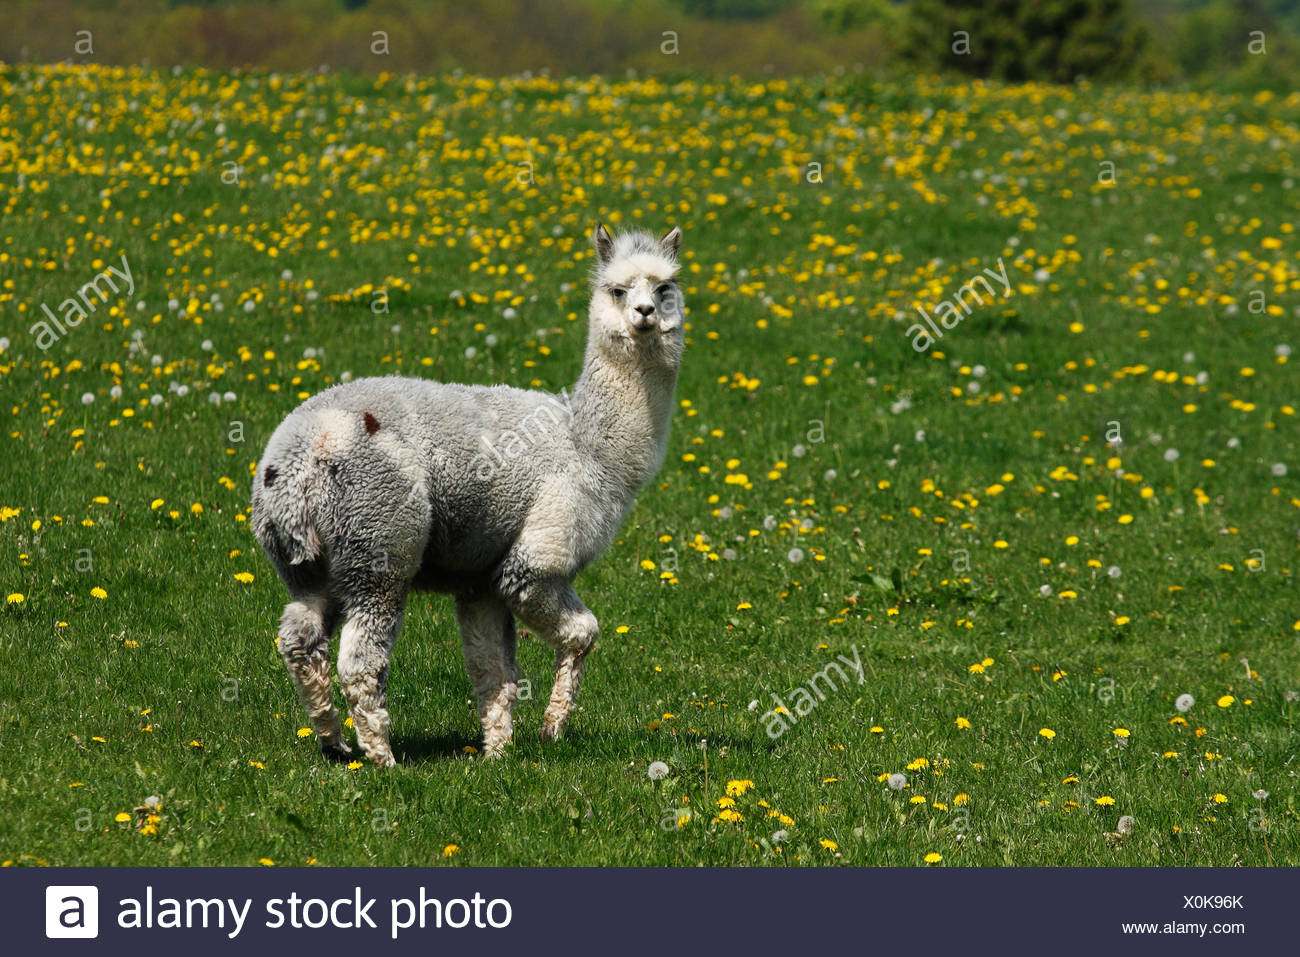 Alpaca male Vicugna pacos standing on a meadow, Lower Saxony, Germany - Stock Image